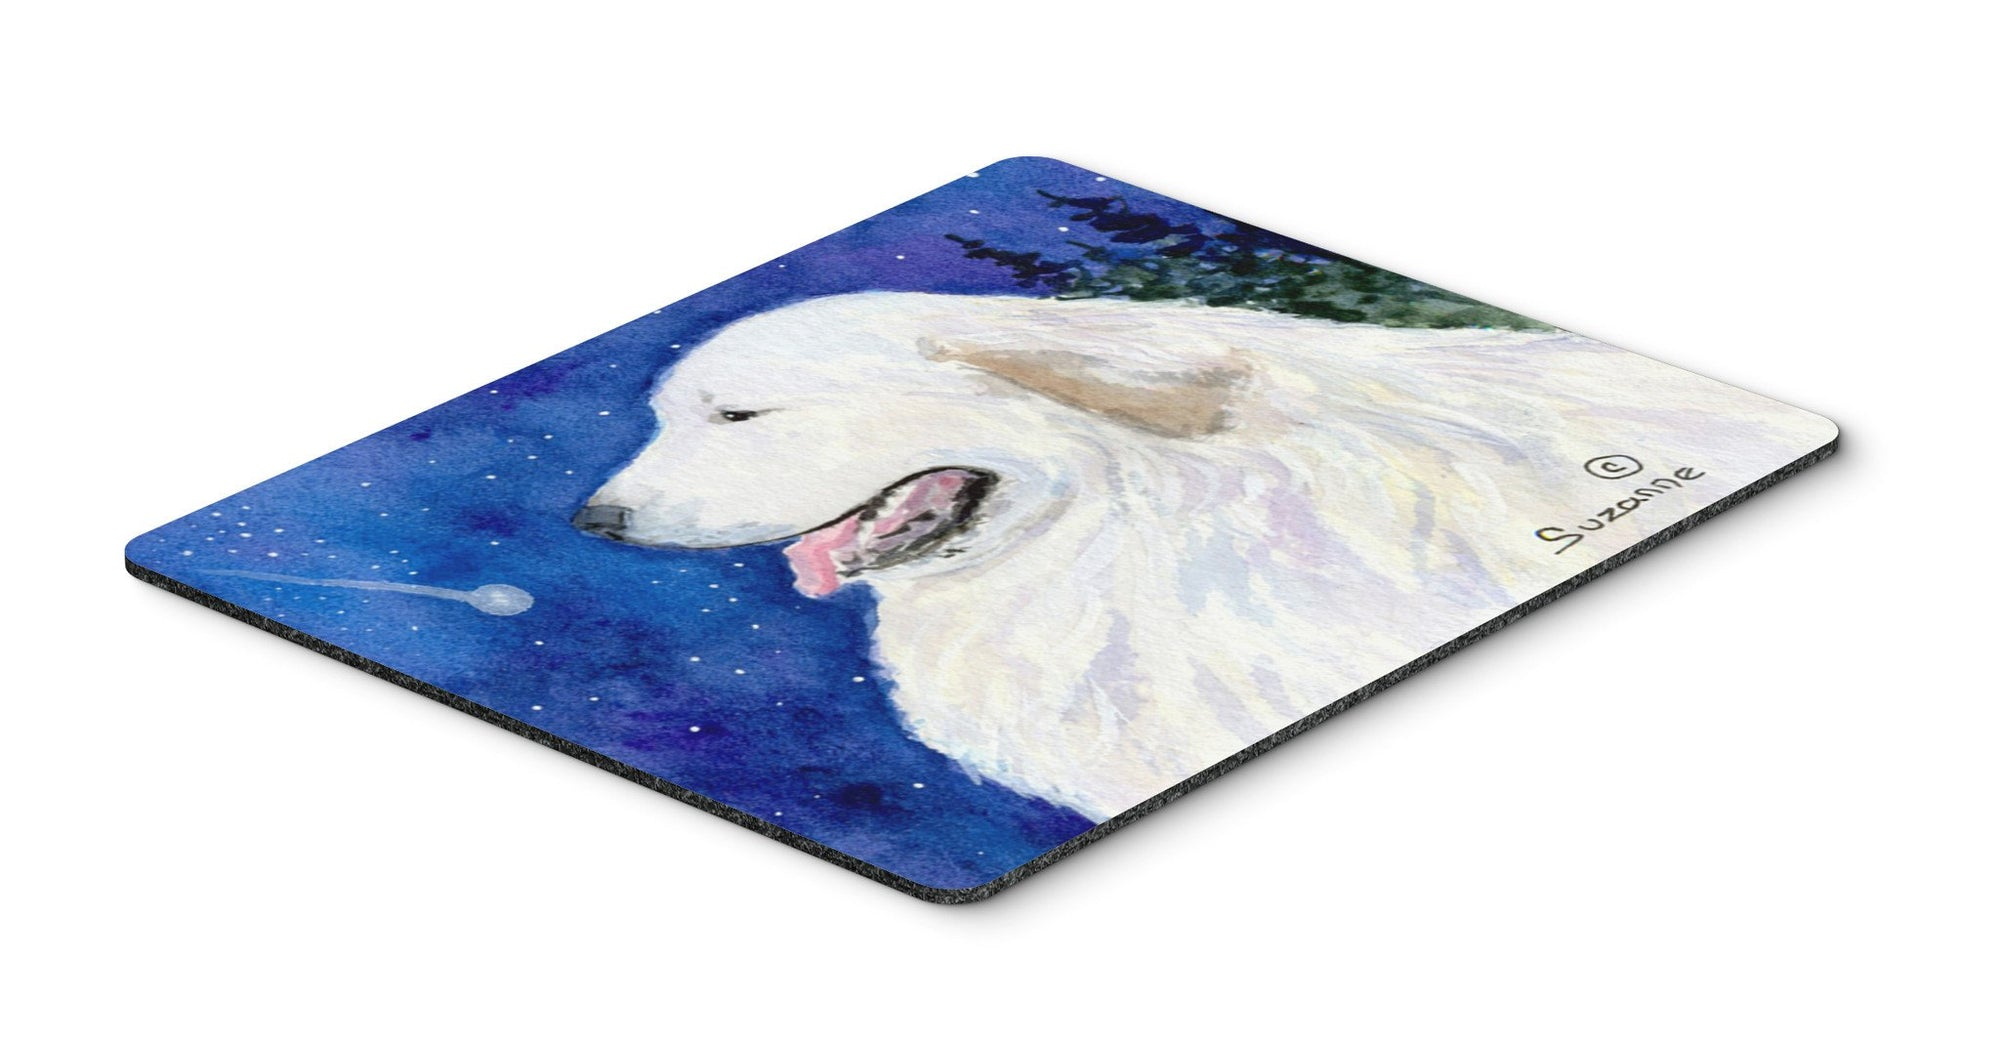 Great Pyrenees Mouse pad, hot pad, or trivet by Caroline's Treasures